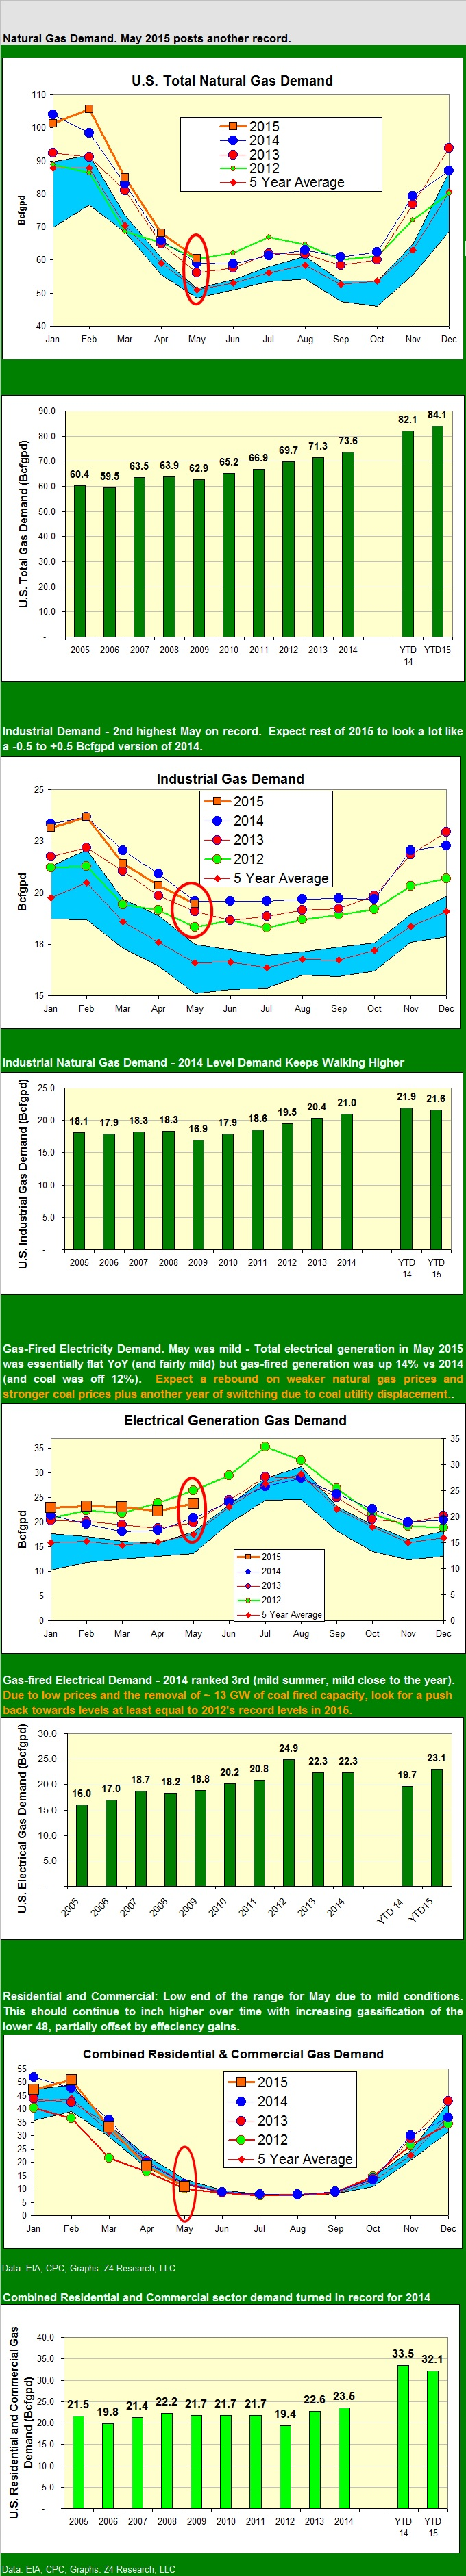 ng demand May 2015